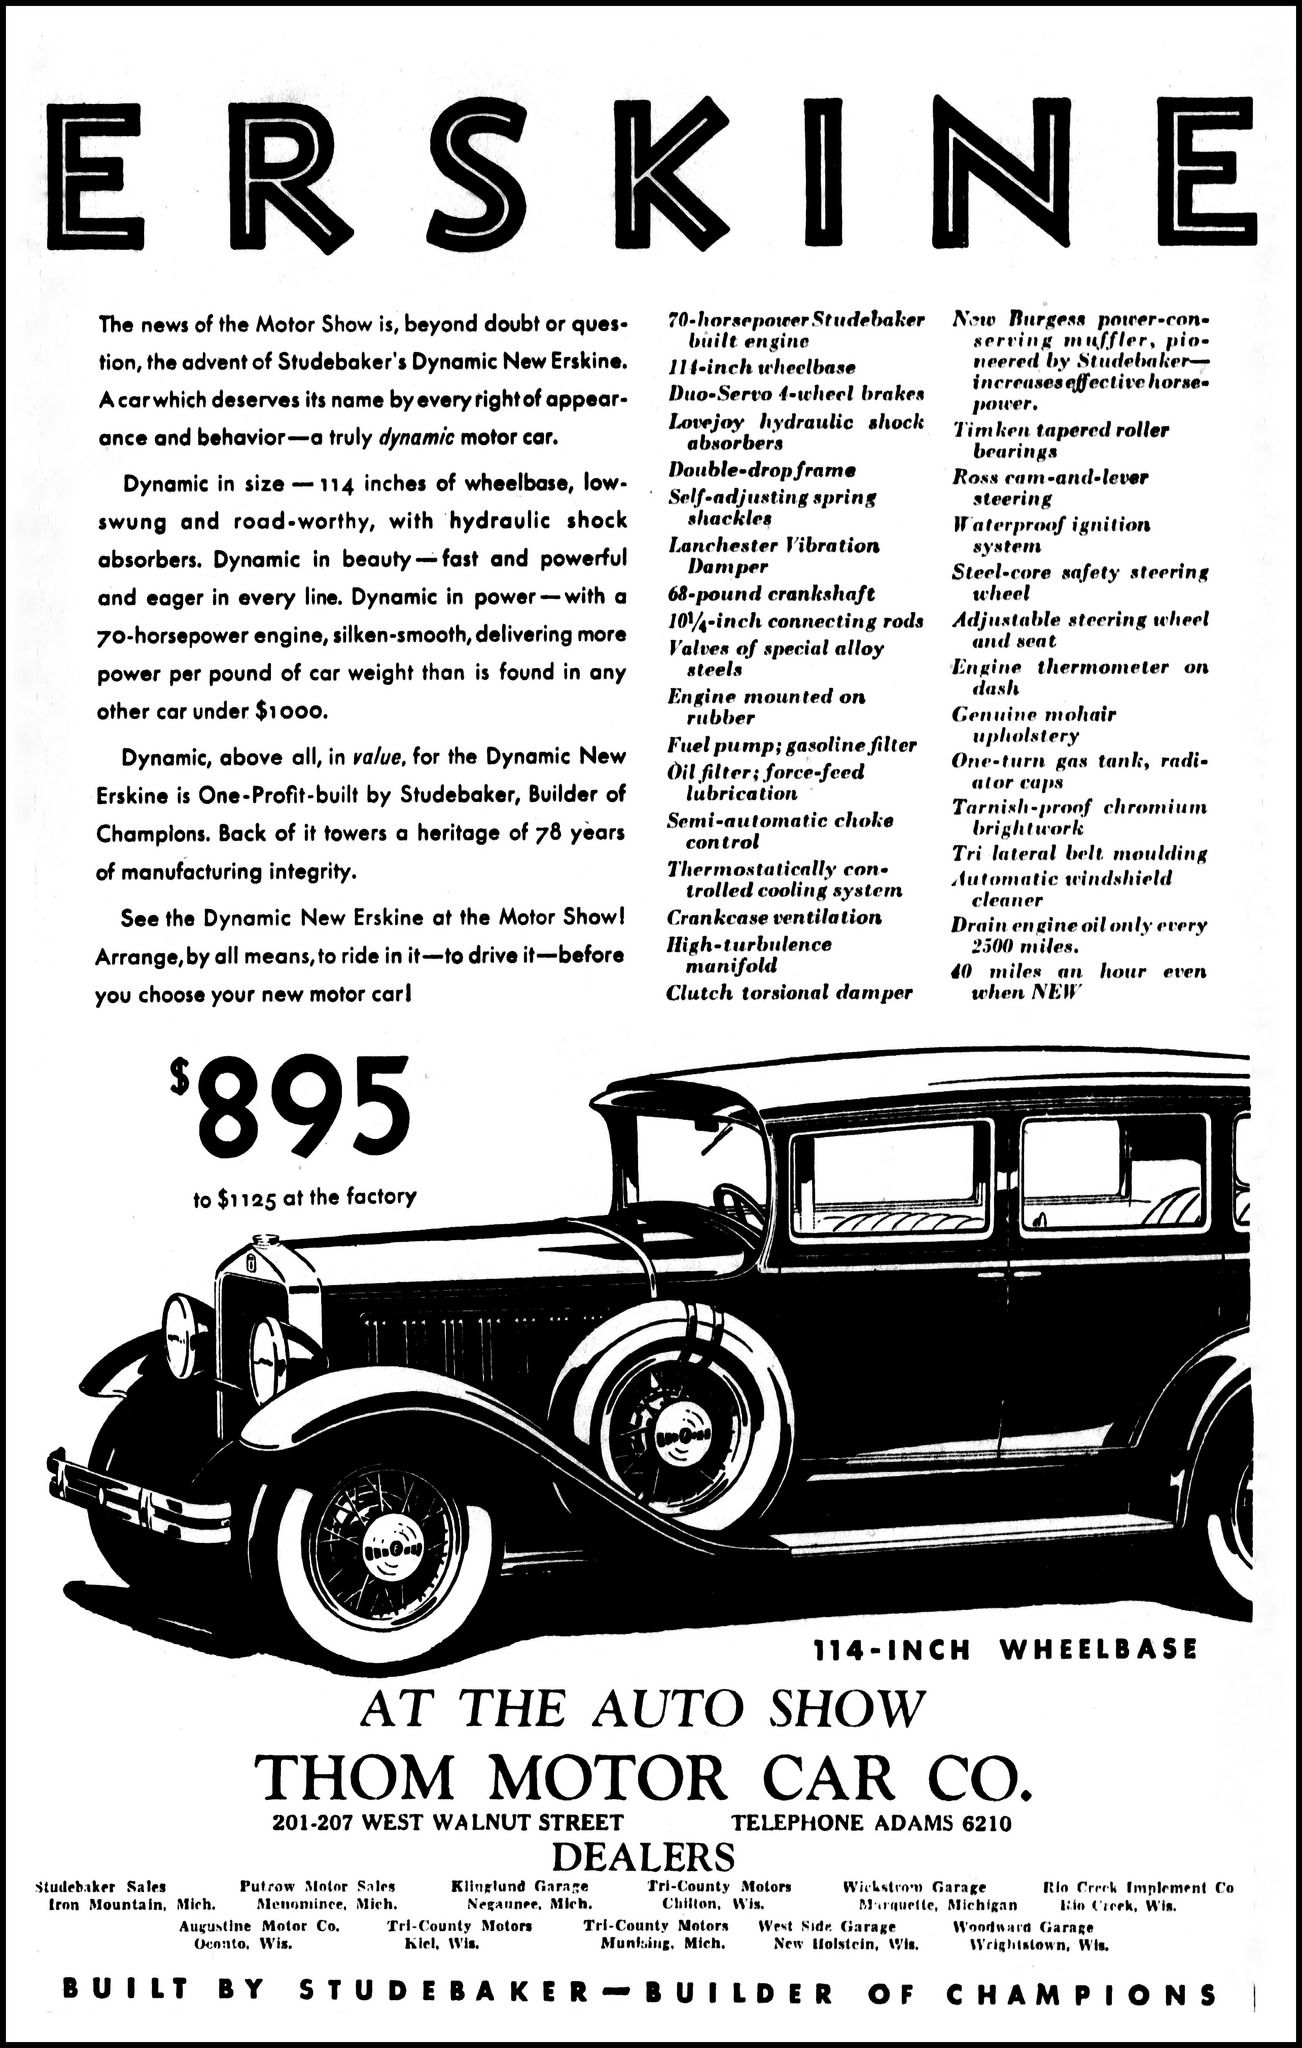 Vintage Advertising For The 1930 Erskine Automobile In Green Bay Wiring Diagram 1976 Chevy Monza Fuel Pump Wisconsin Press Gazette Newspaper February 12 And